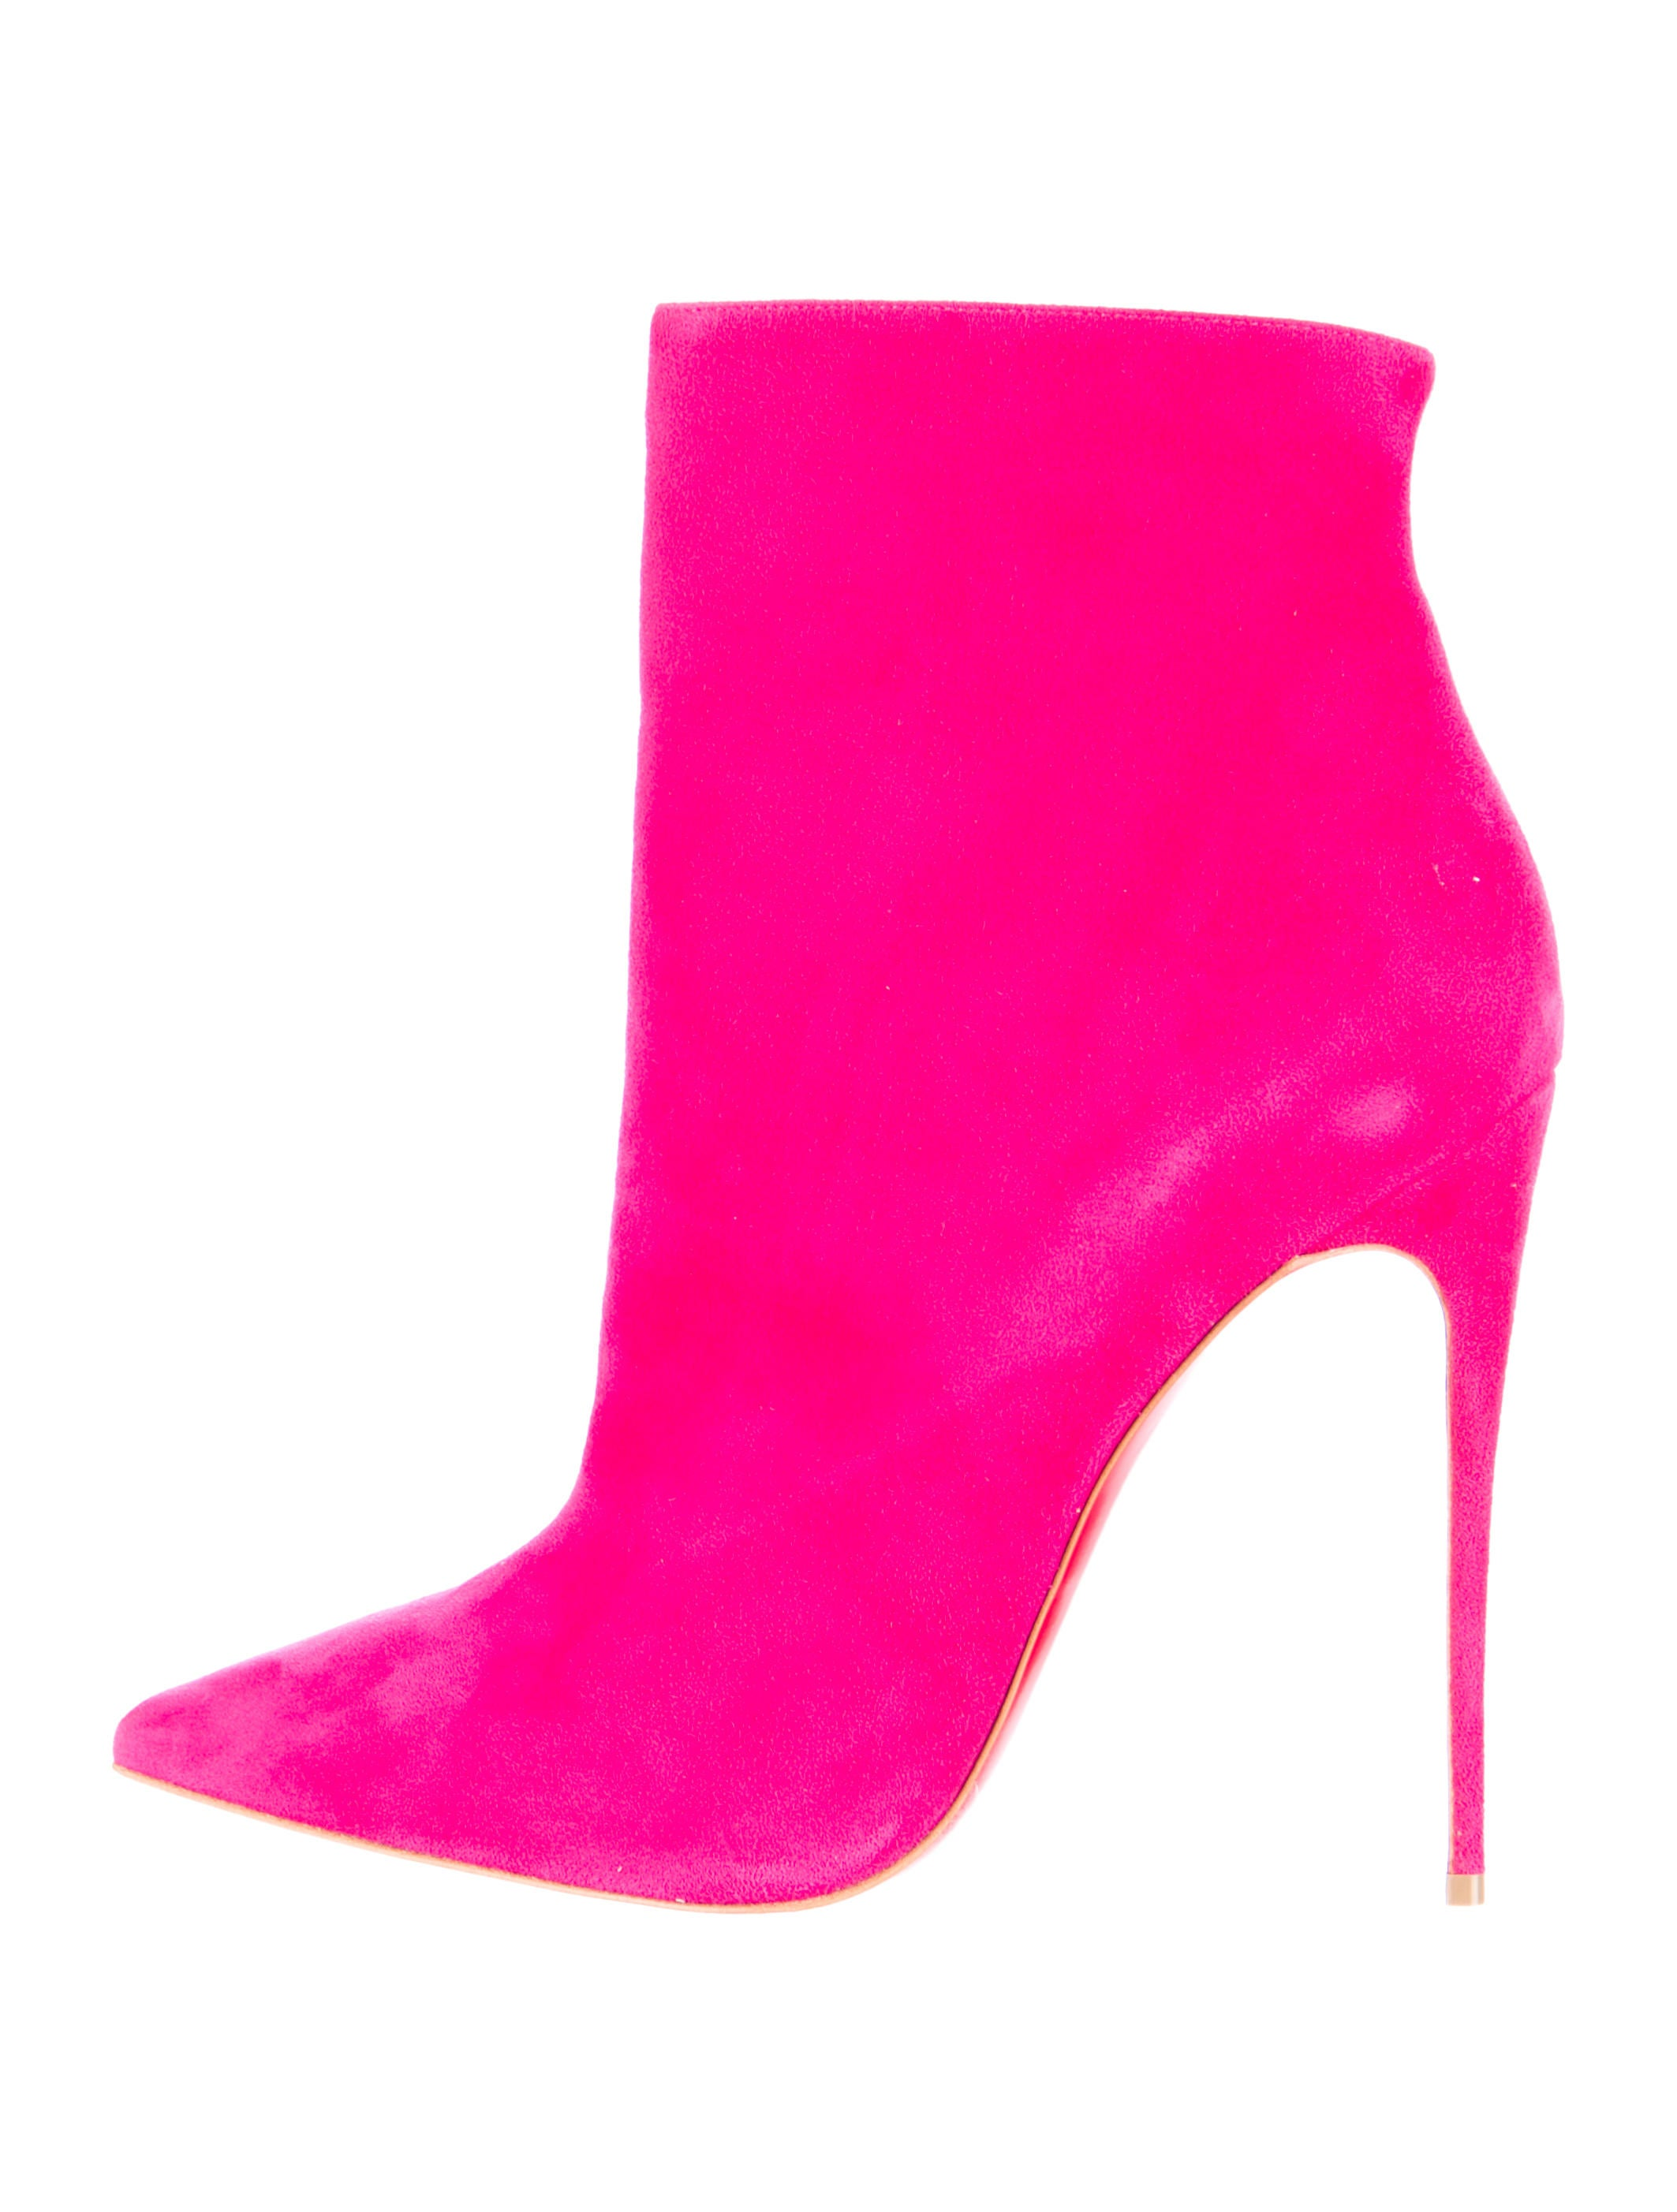 Artesur ? christian louboutin Kate Booties Hot pink suede pointed toes